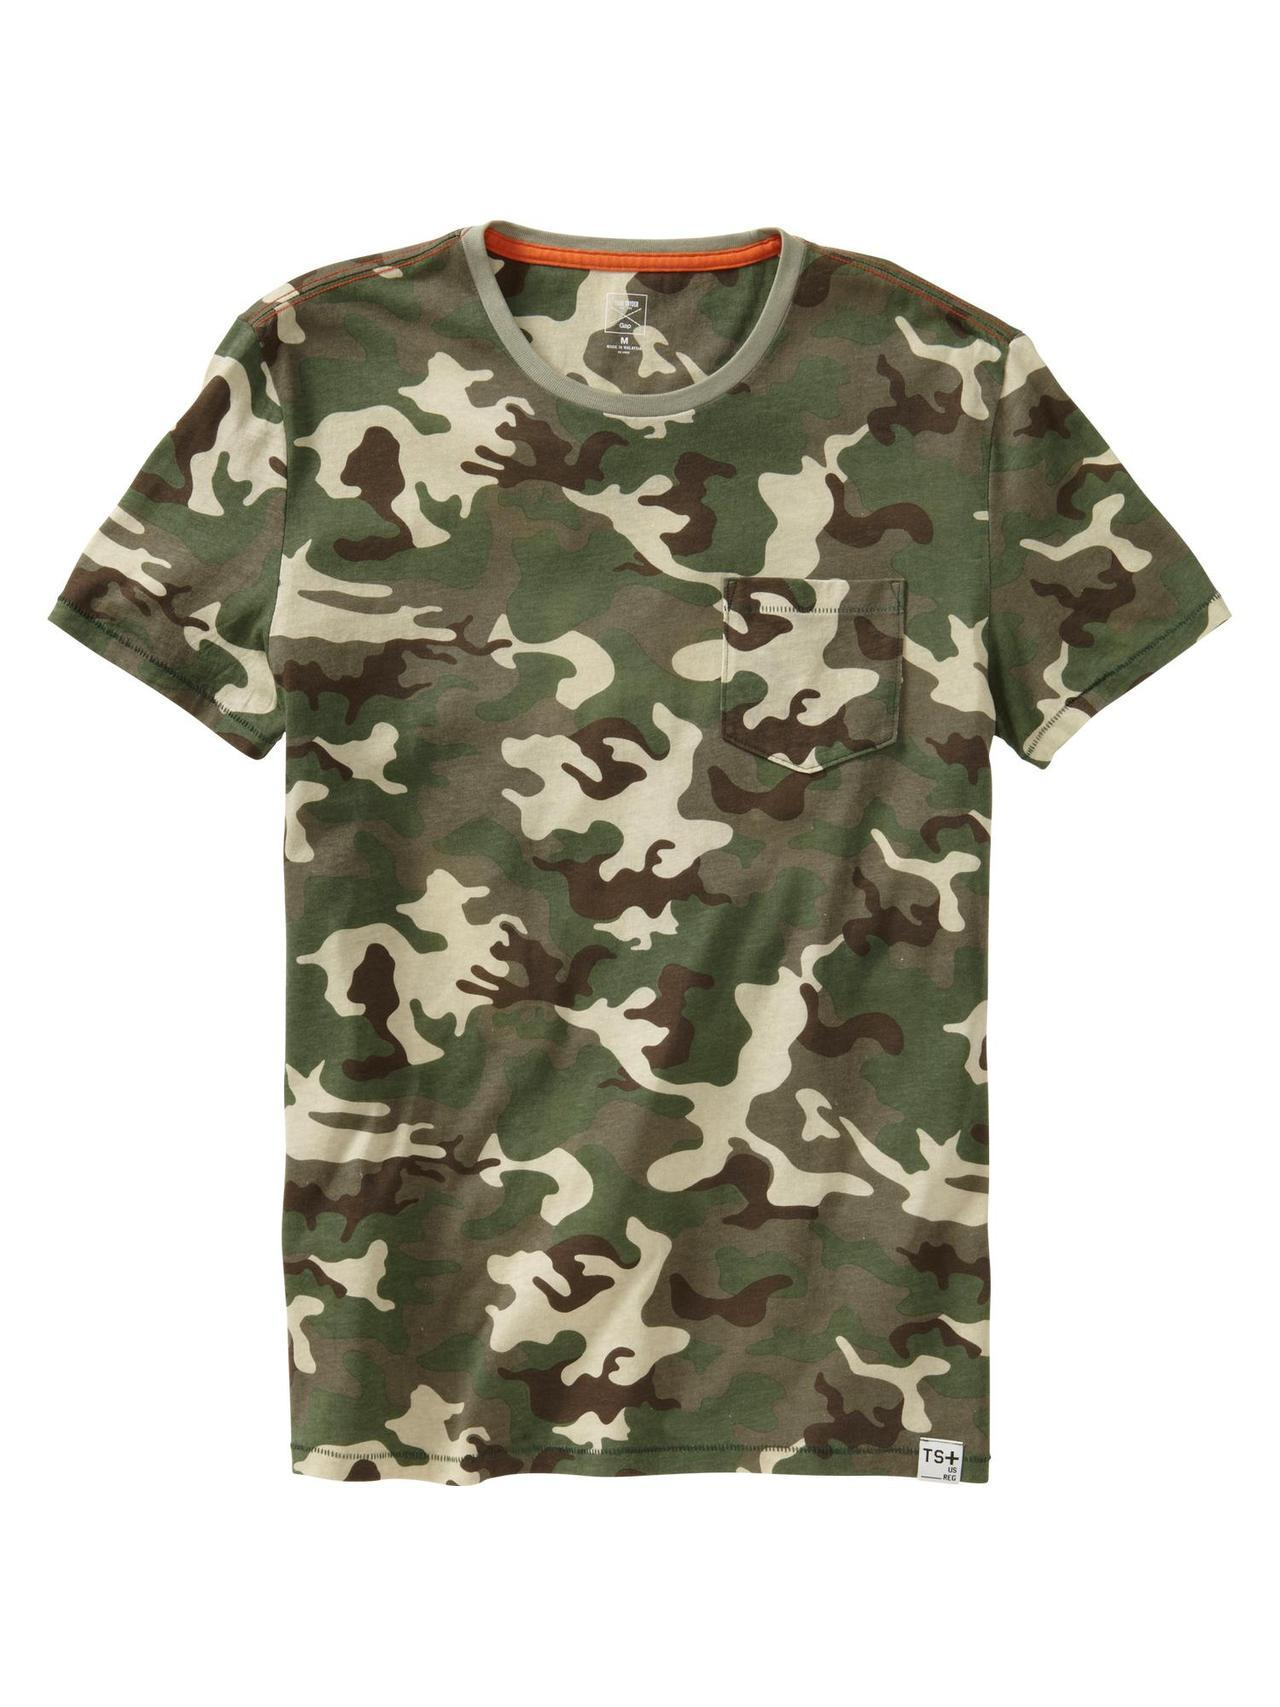 GAP x GQ, Todd Snyder camo pocket tee.